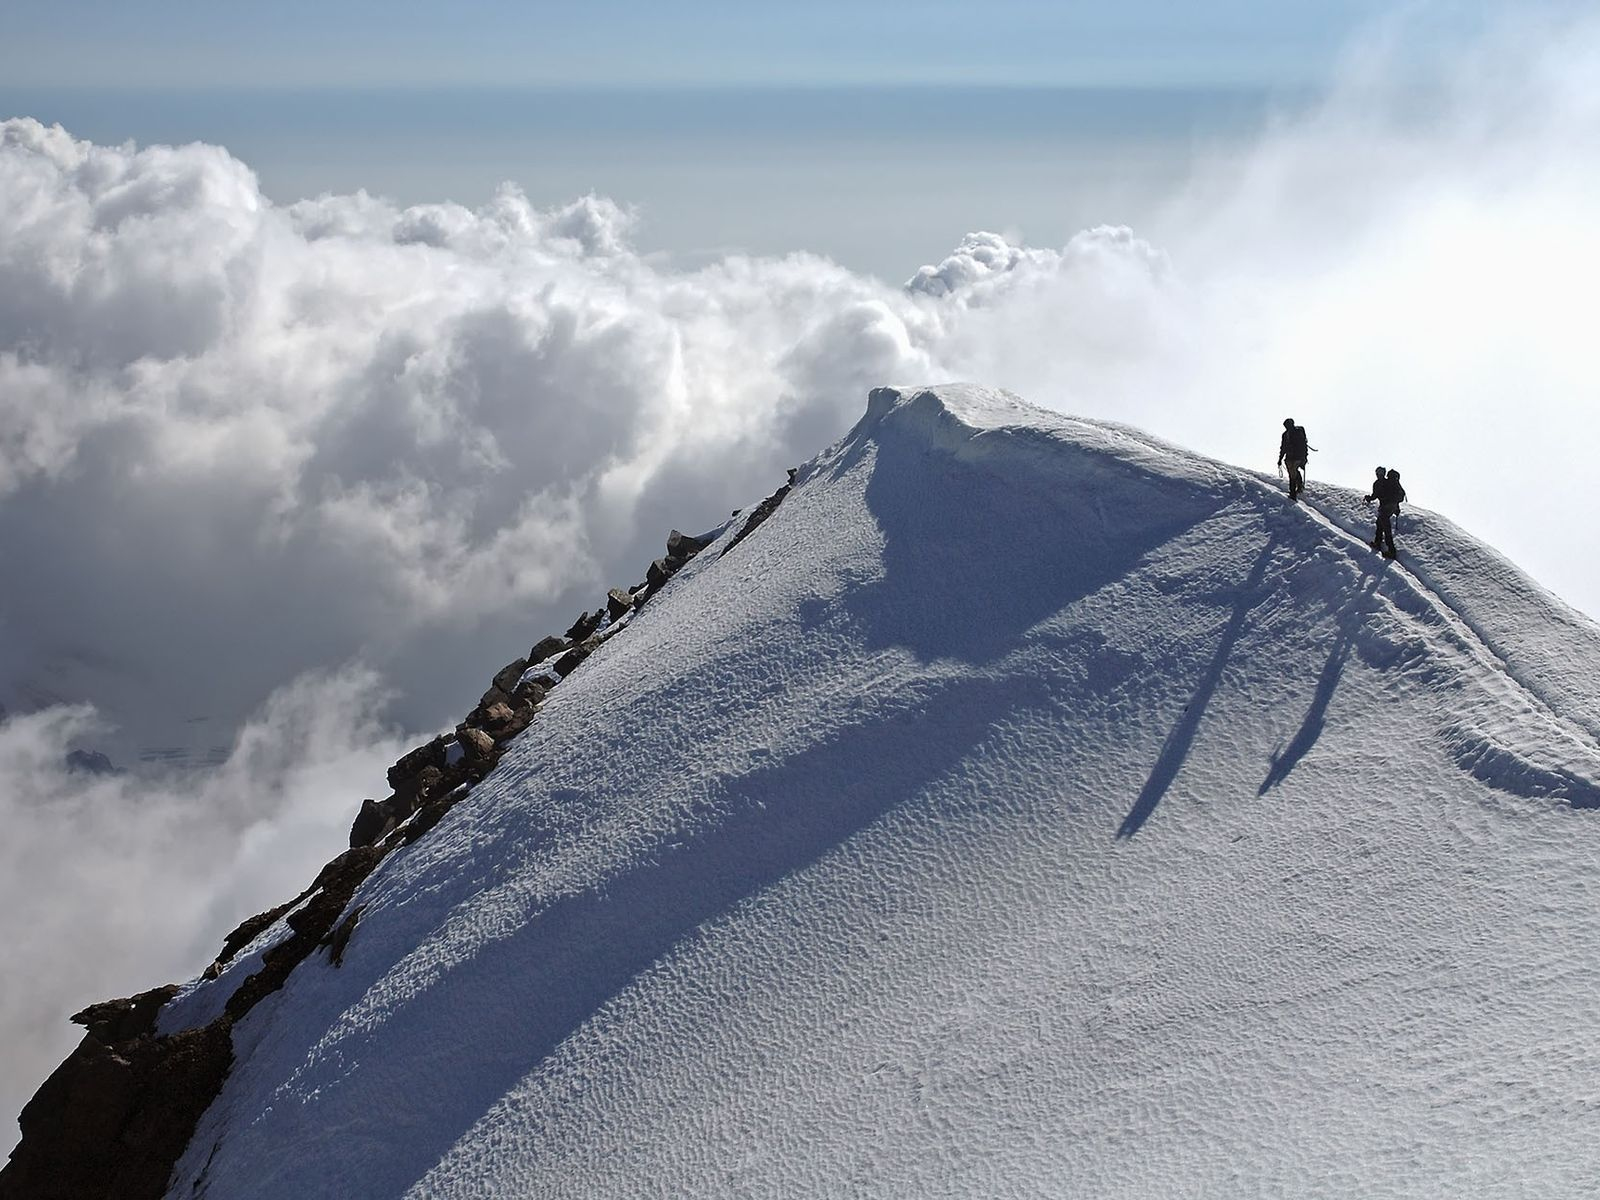 Valais has 47 mountains over 4,000 metres high and the highest-altitude ski regions in Switzerland with ...